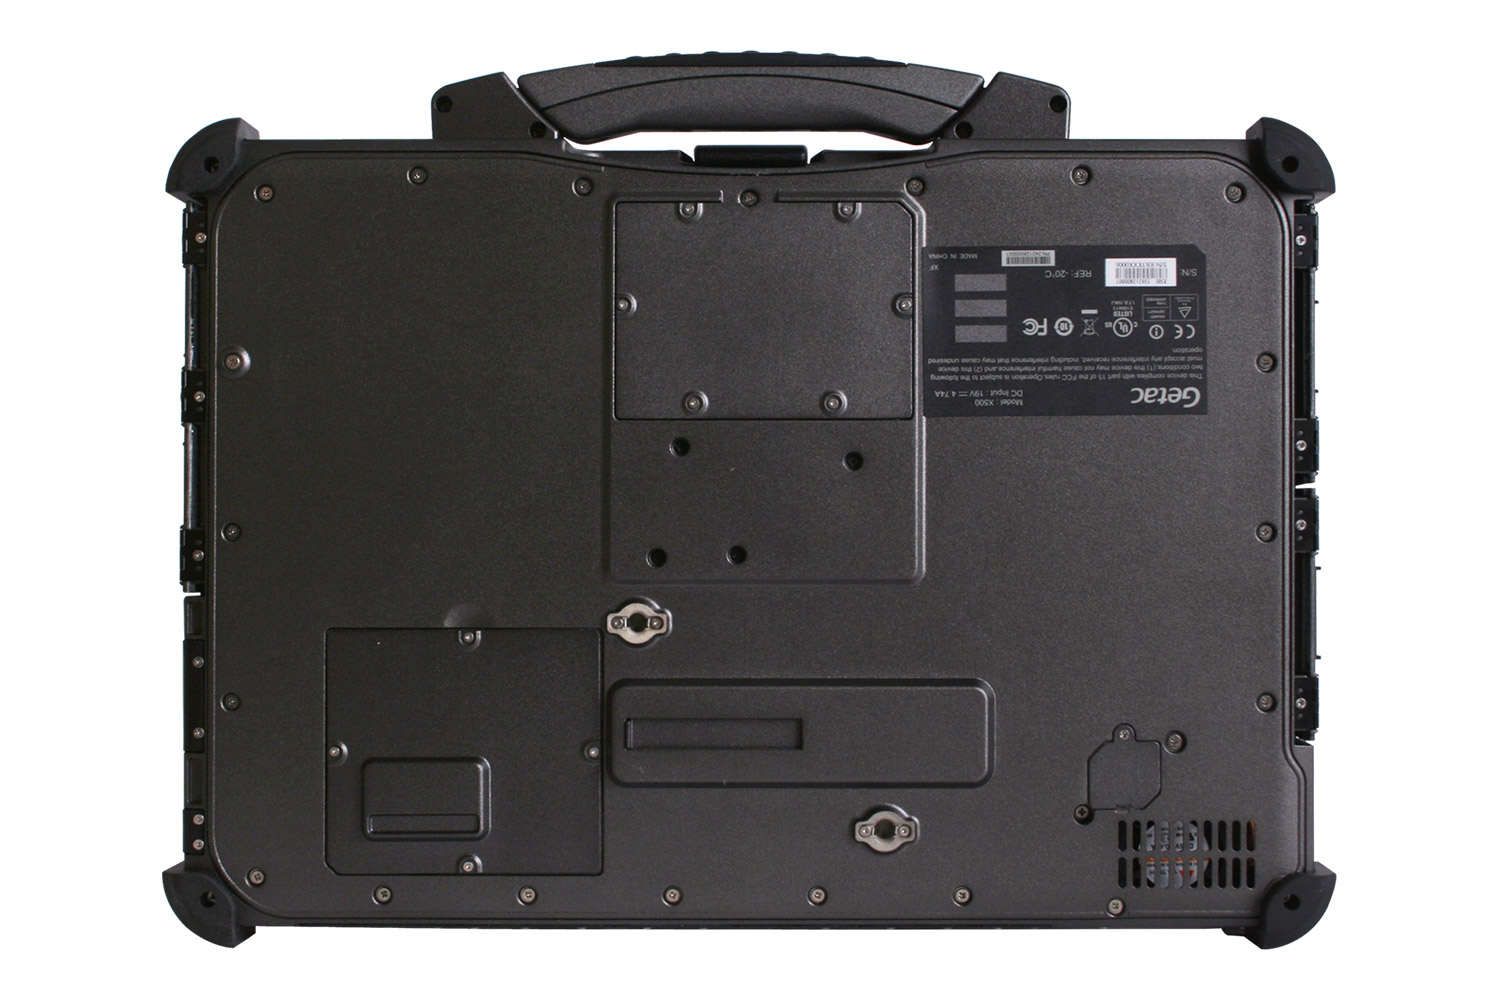 075-X500-Rugged-expandable-notebook-00003